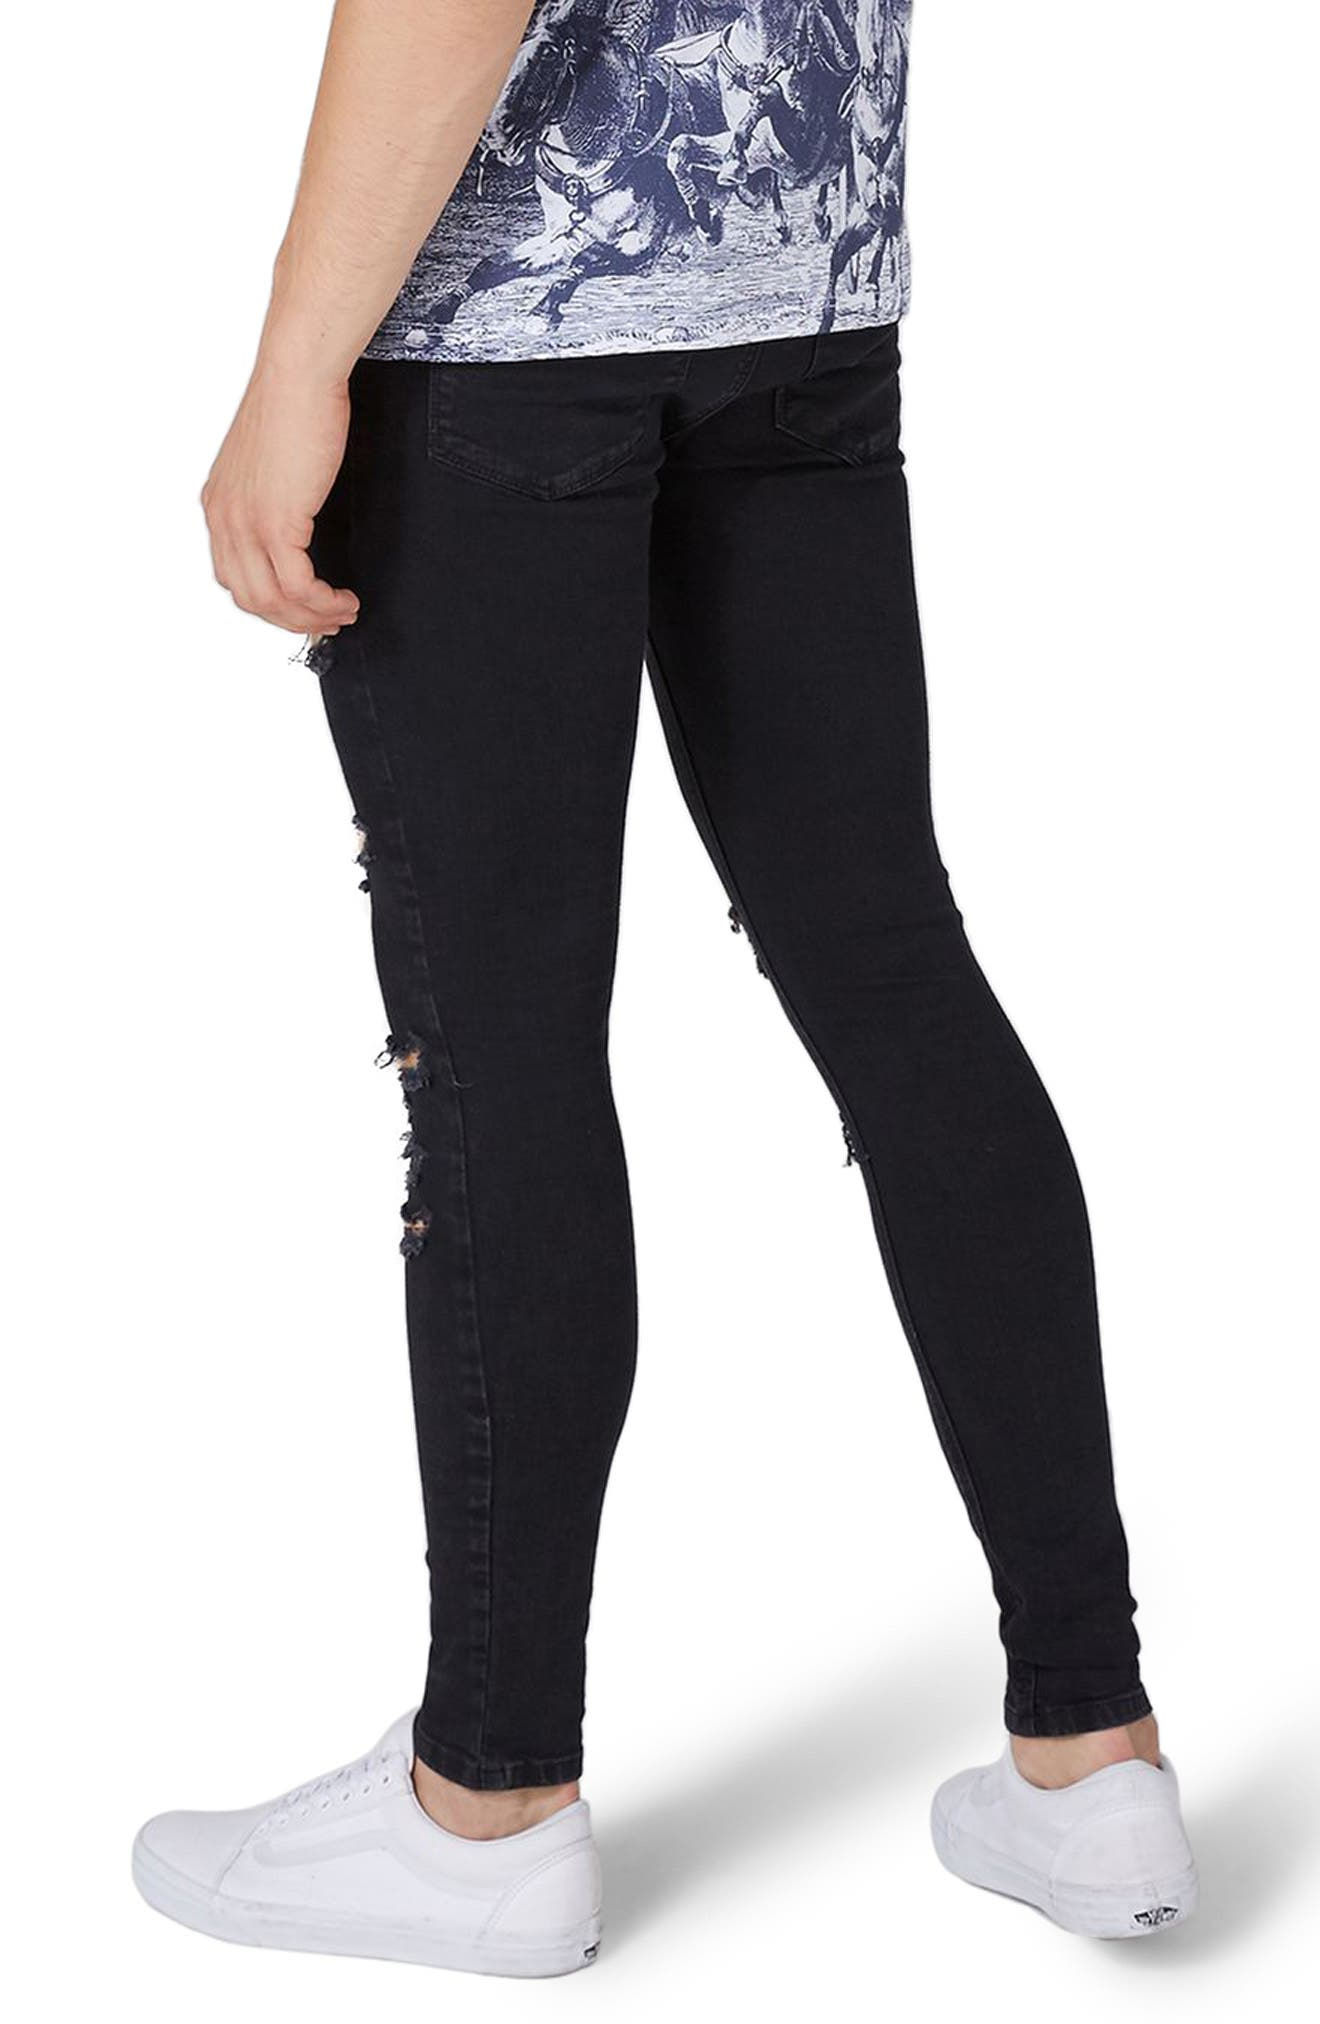 TOPMAN,                             Skinny Spray On Ripped Jeans,                             Alternate thumbnail 2, color,                             001